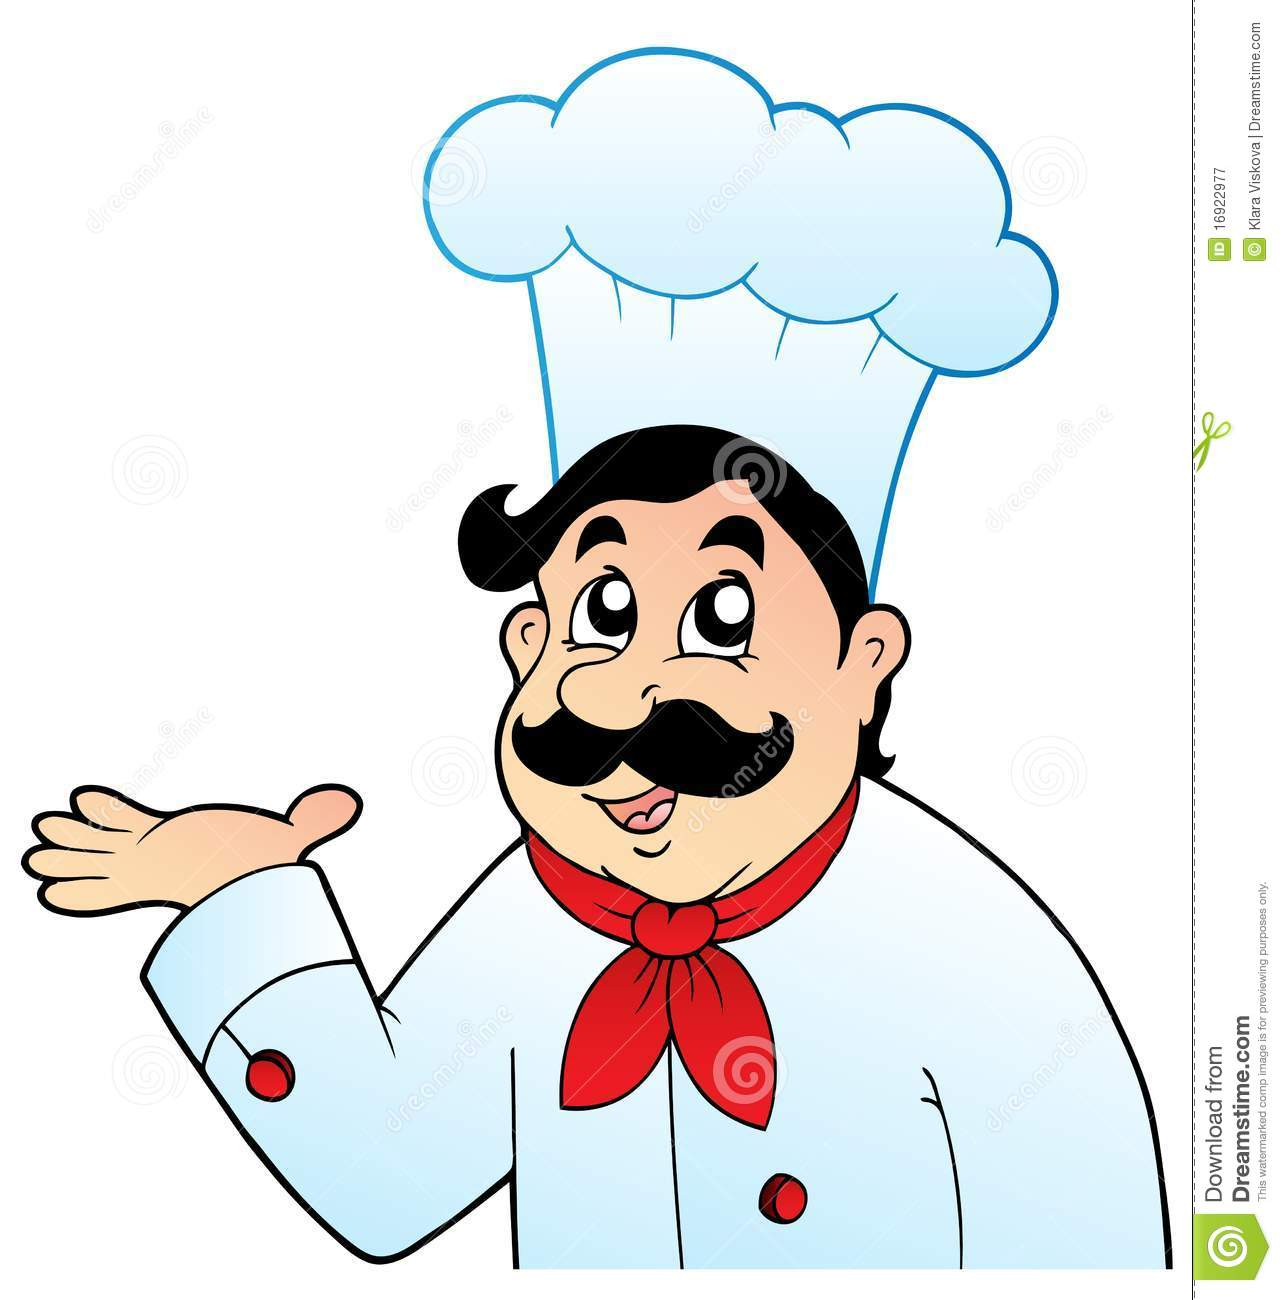 Cartoon Chef Clipart - Clipart Kid